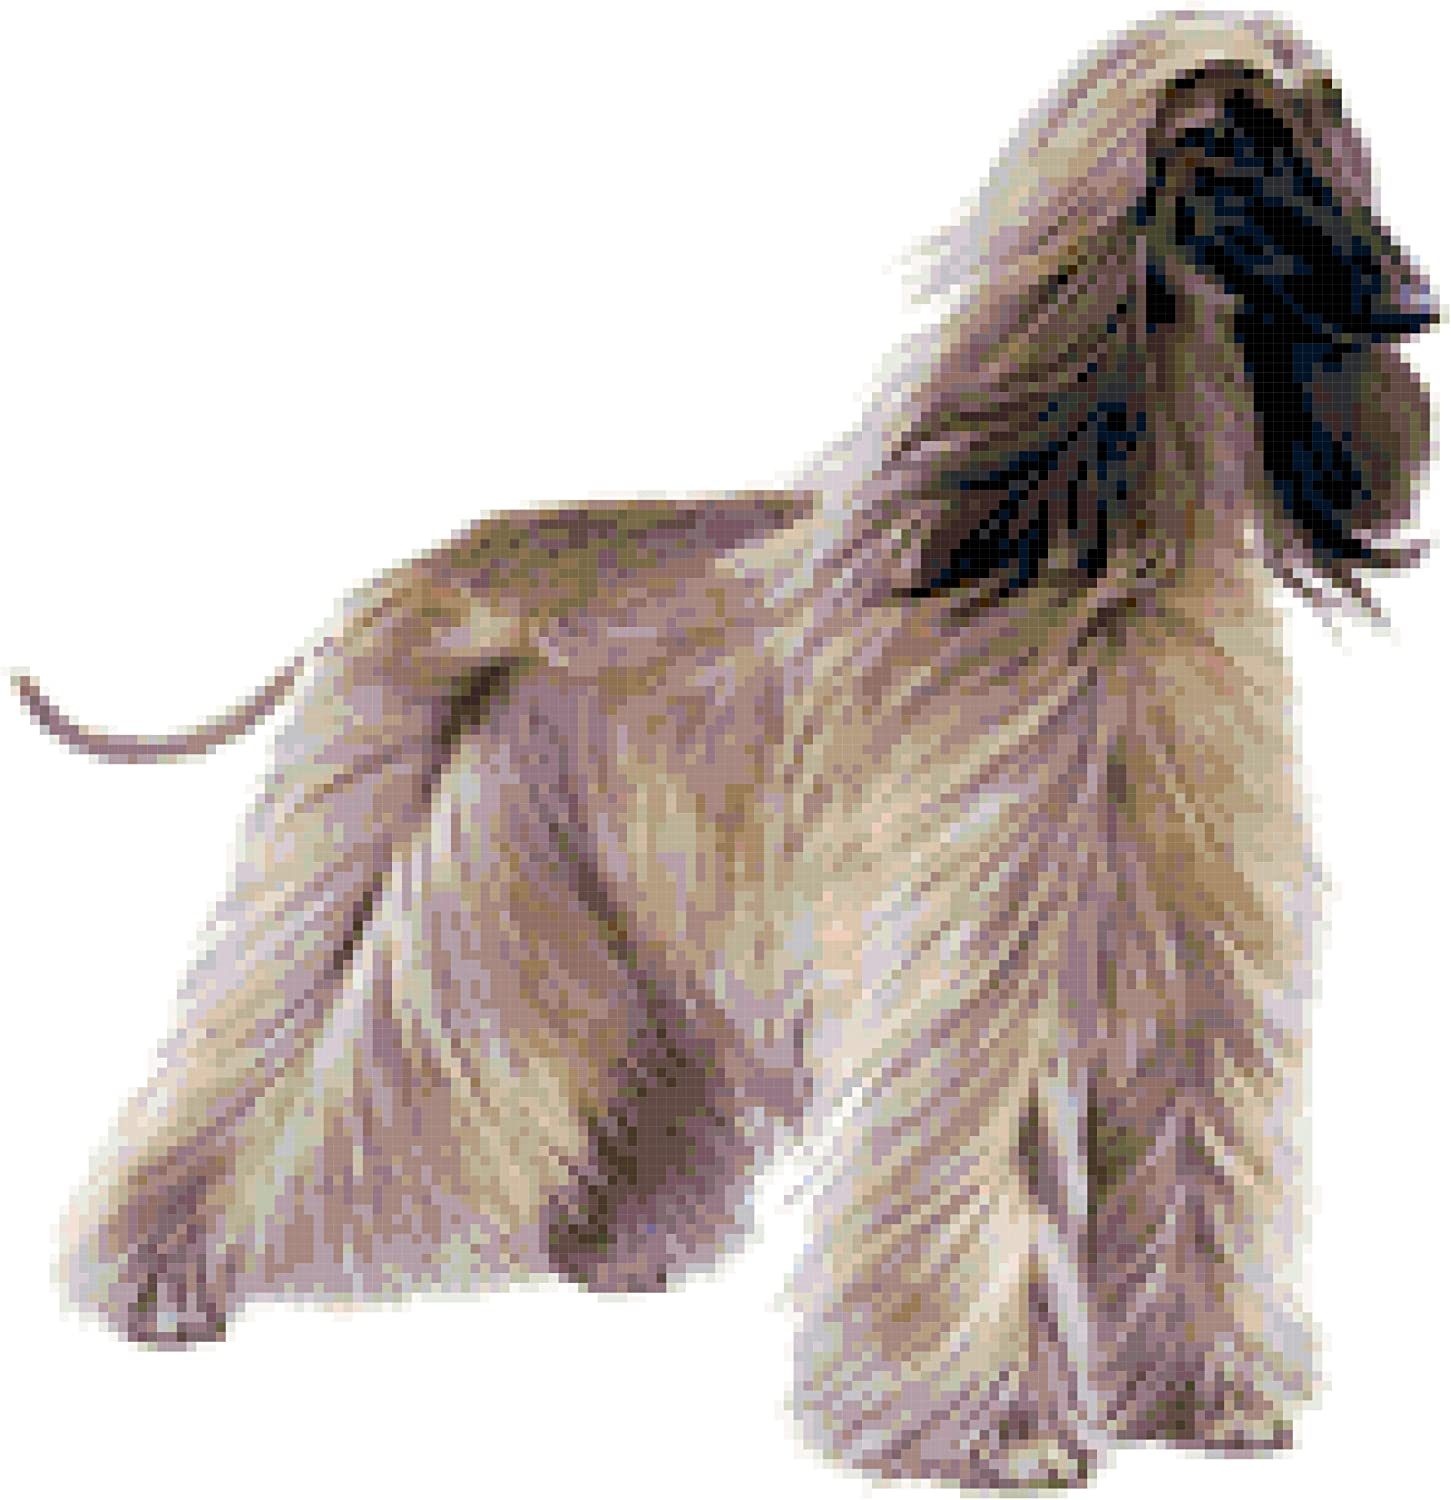 Afghan Hound Dog Counted Cross Stitch Pattern